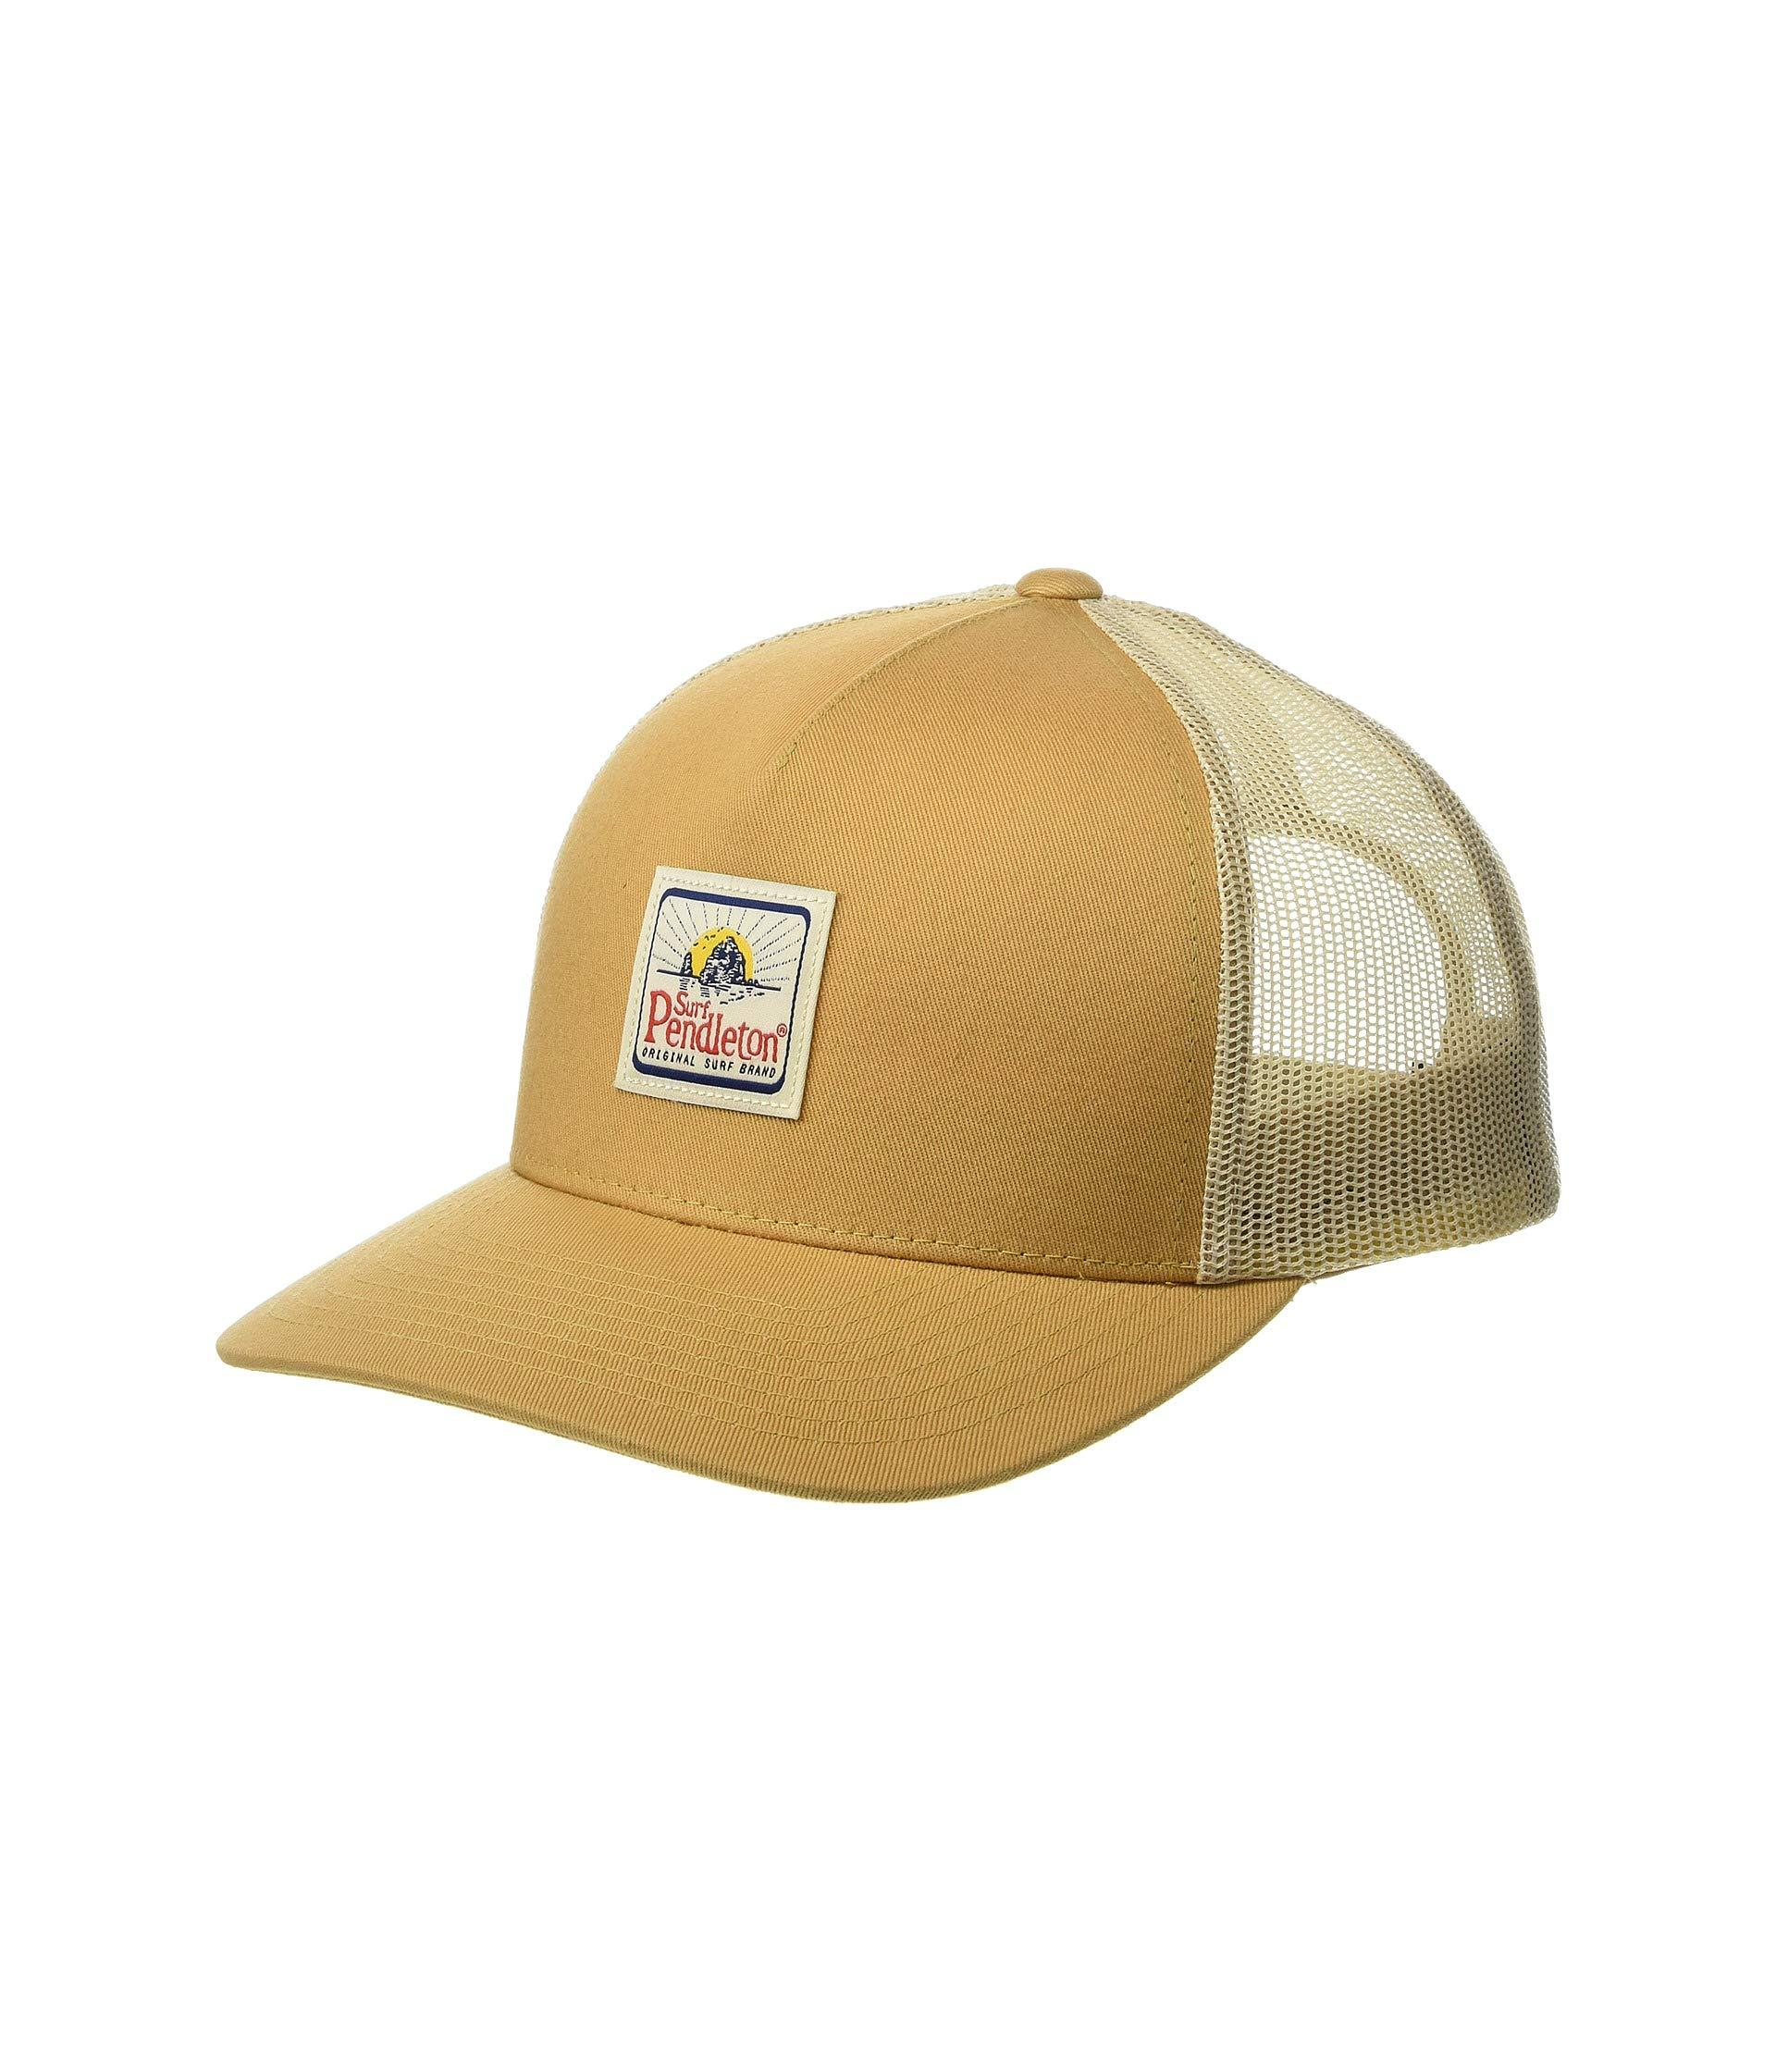 bc41d508f42 Pendleton - Multicolor Surf Trucker Hat (curry) Baseball Caps for Men -  Lyst. View fullscreen